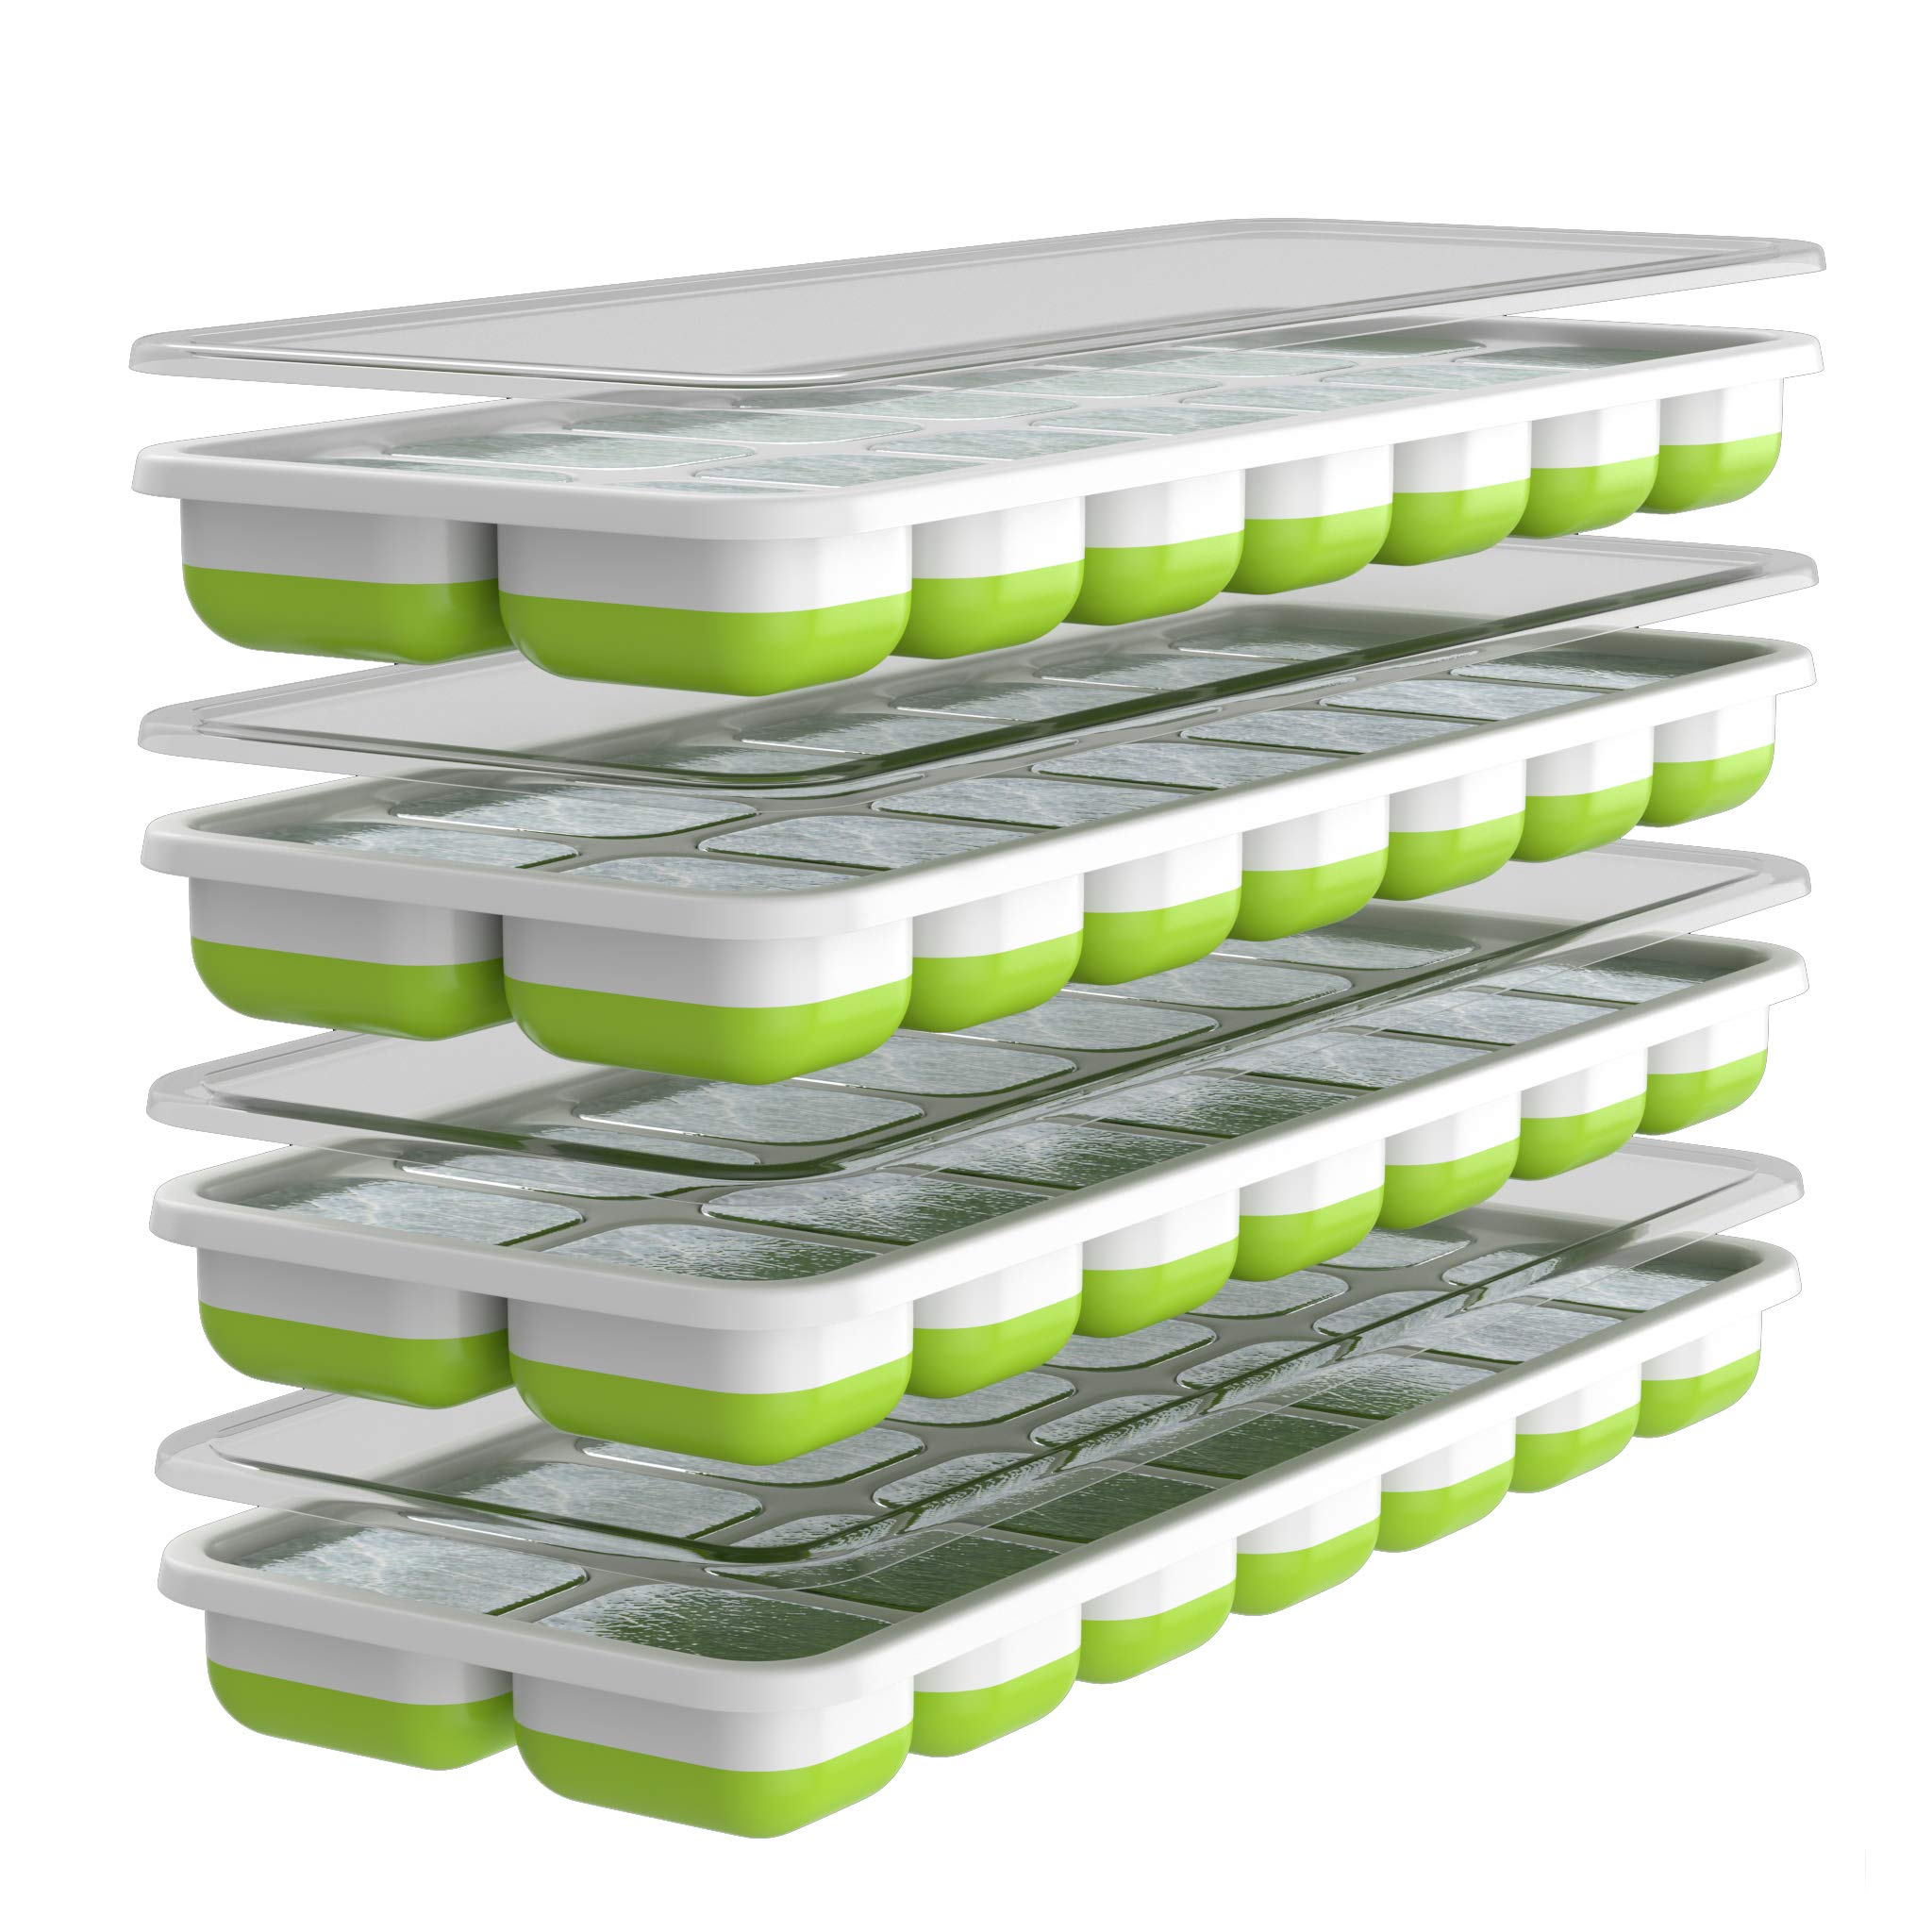 Oliver's Kitchen Ice Cube Trays - 4 x Set of Ice Moulds - Flexible Base for Easy Release Ice Cubes - Save Freezer Space with Non-Spill Stackable Lids - Dishwasher Safe - BPA Free Silicone Ice Molds